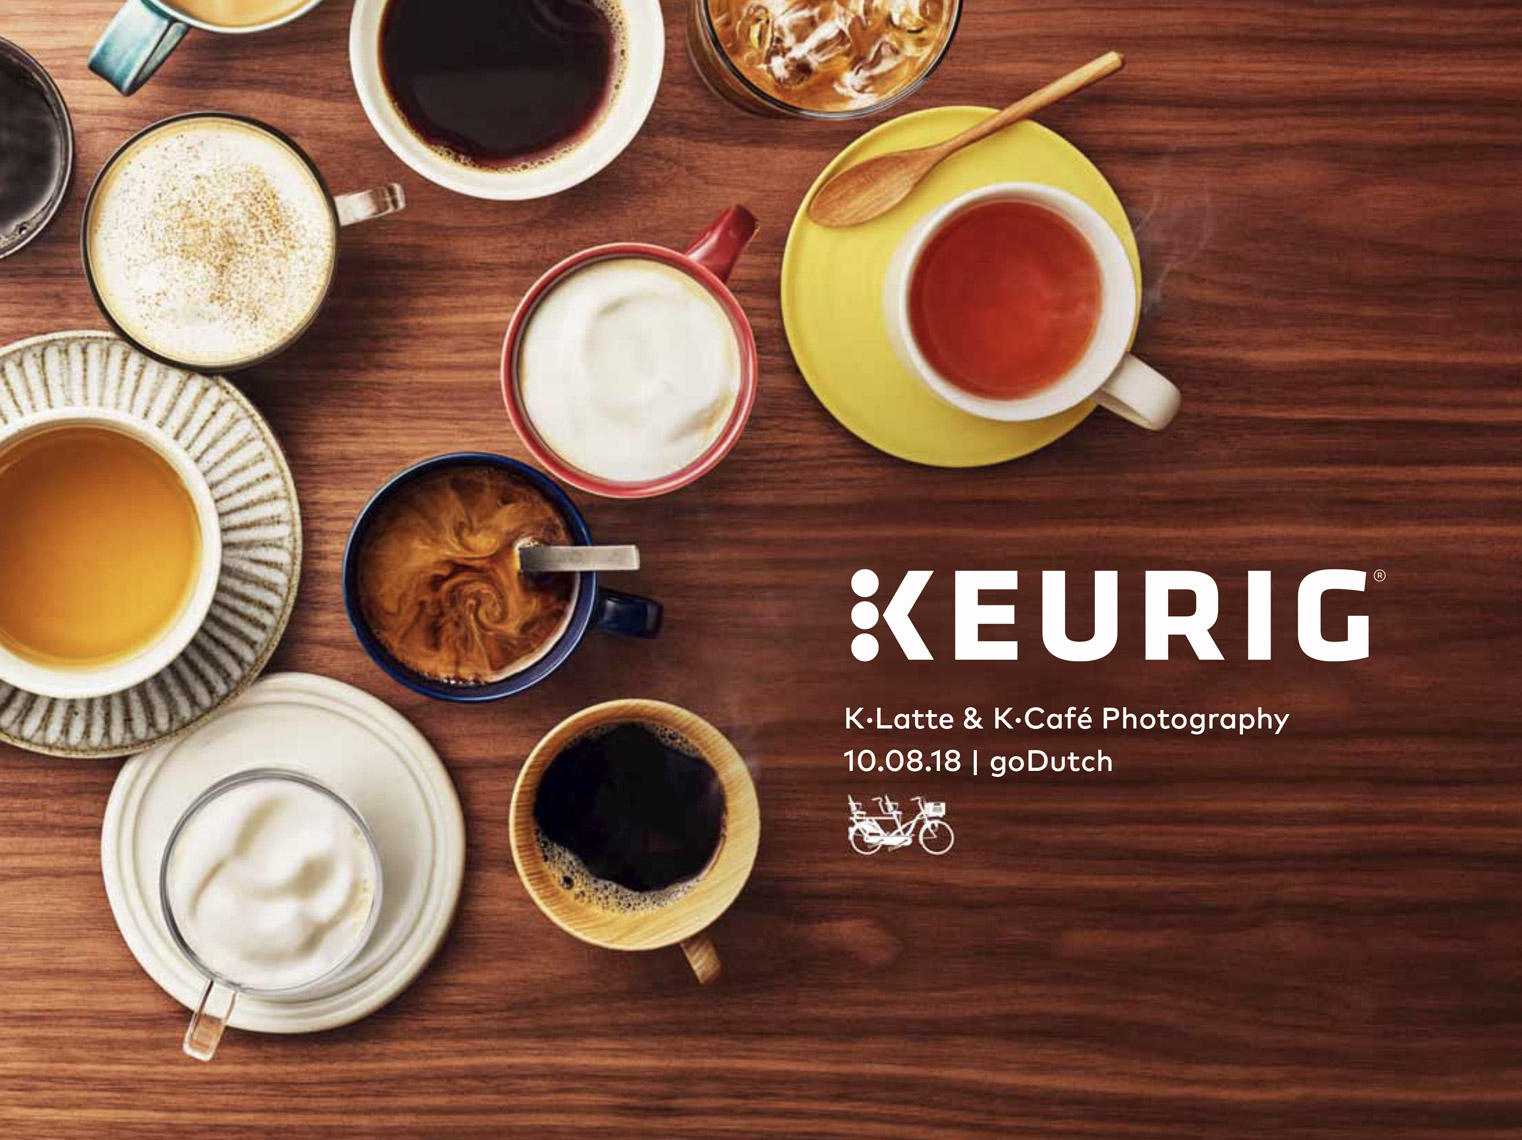 food stylist in New York - Coffees and teas Keurig advertising photographed by Tara Donne photographer